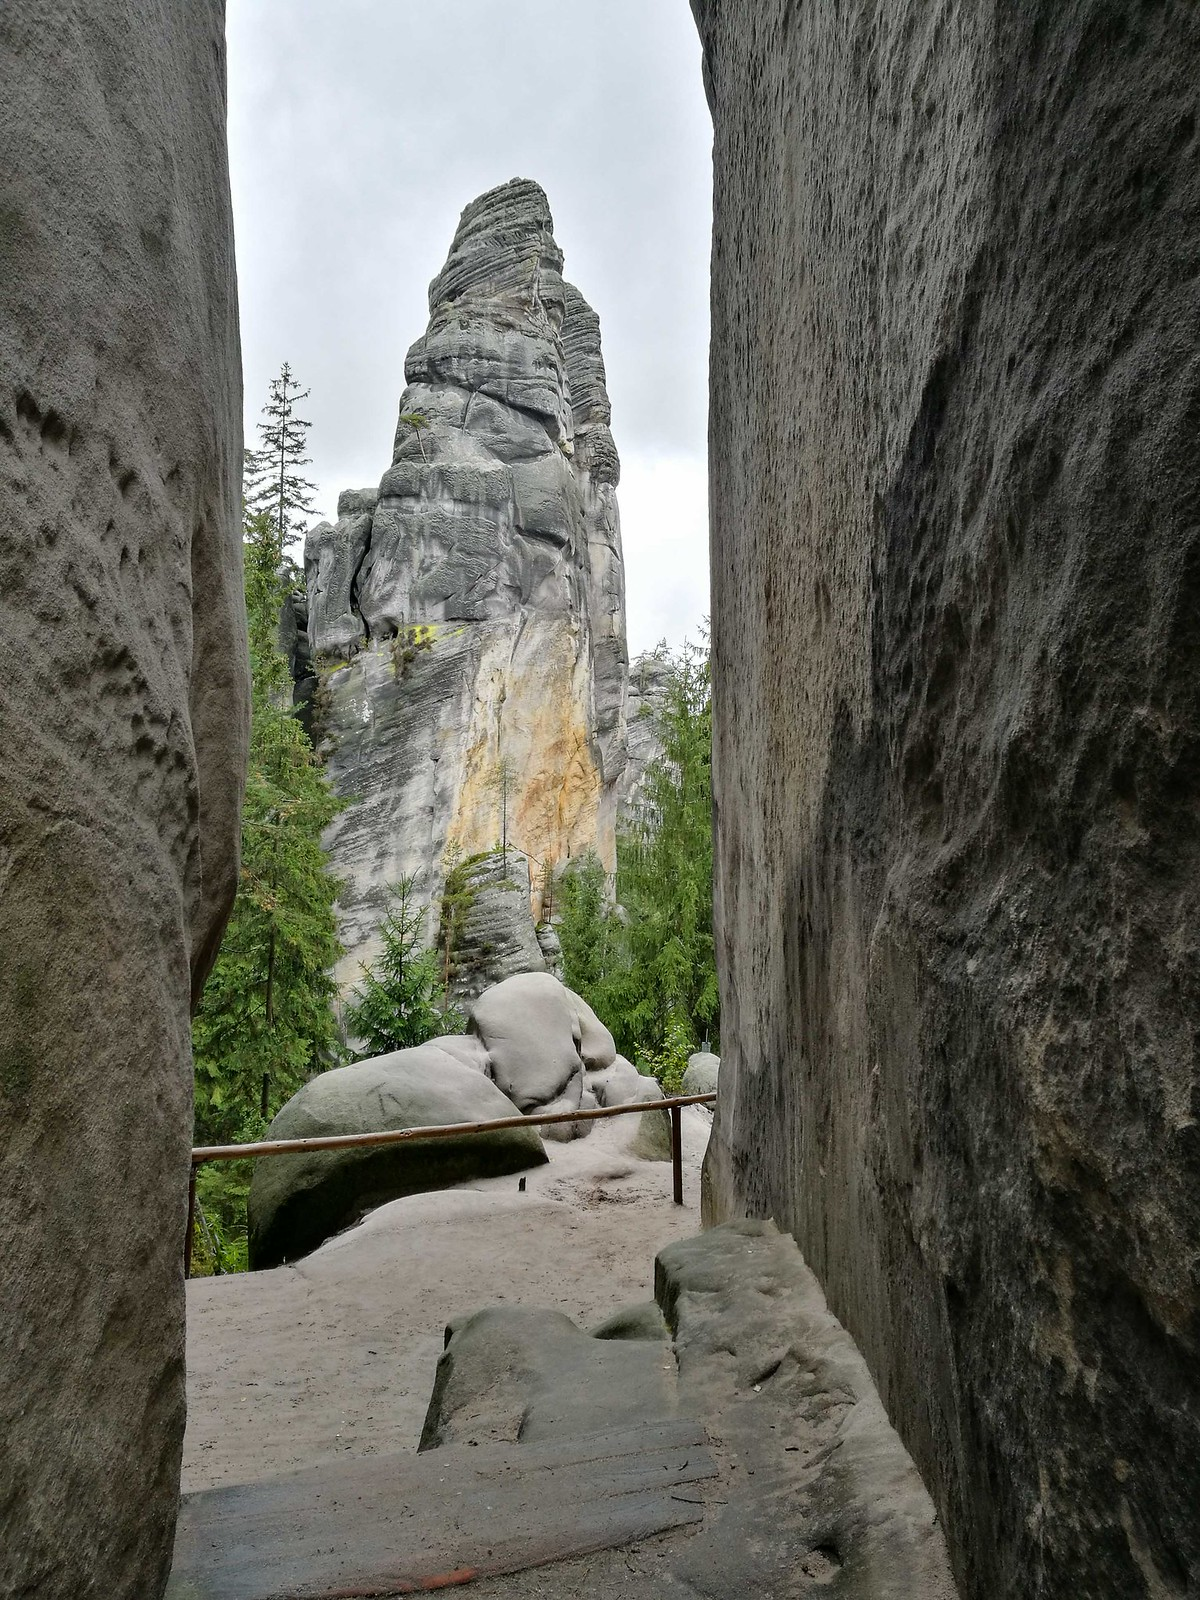 Adventurous destinations in the Czech Republic: Adrspach-Teplice Rock Towns